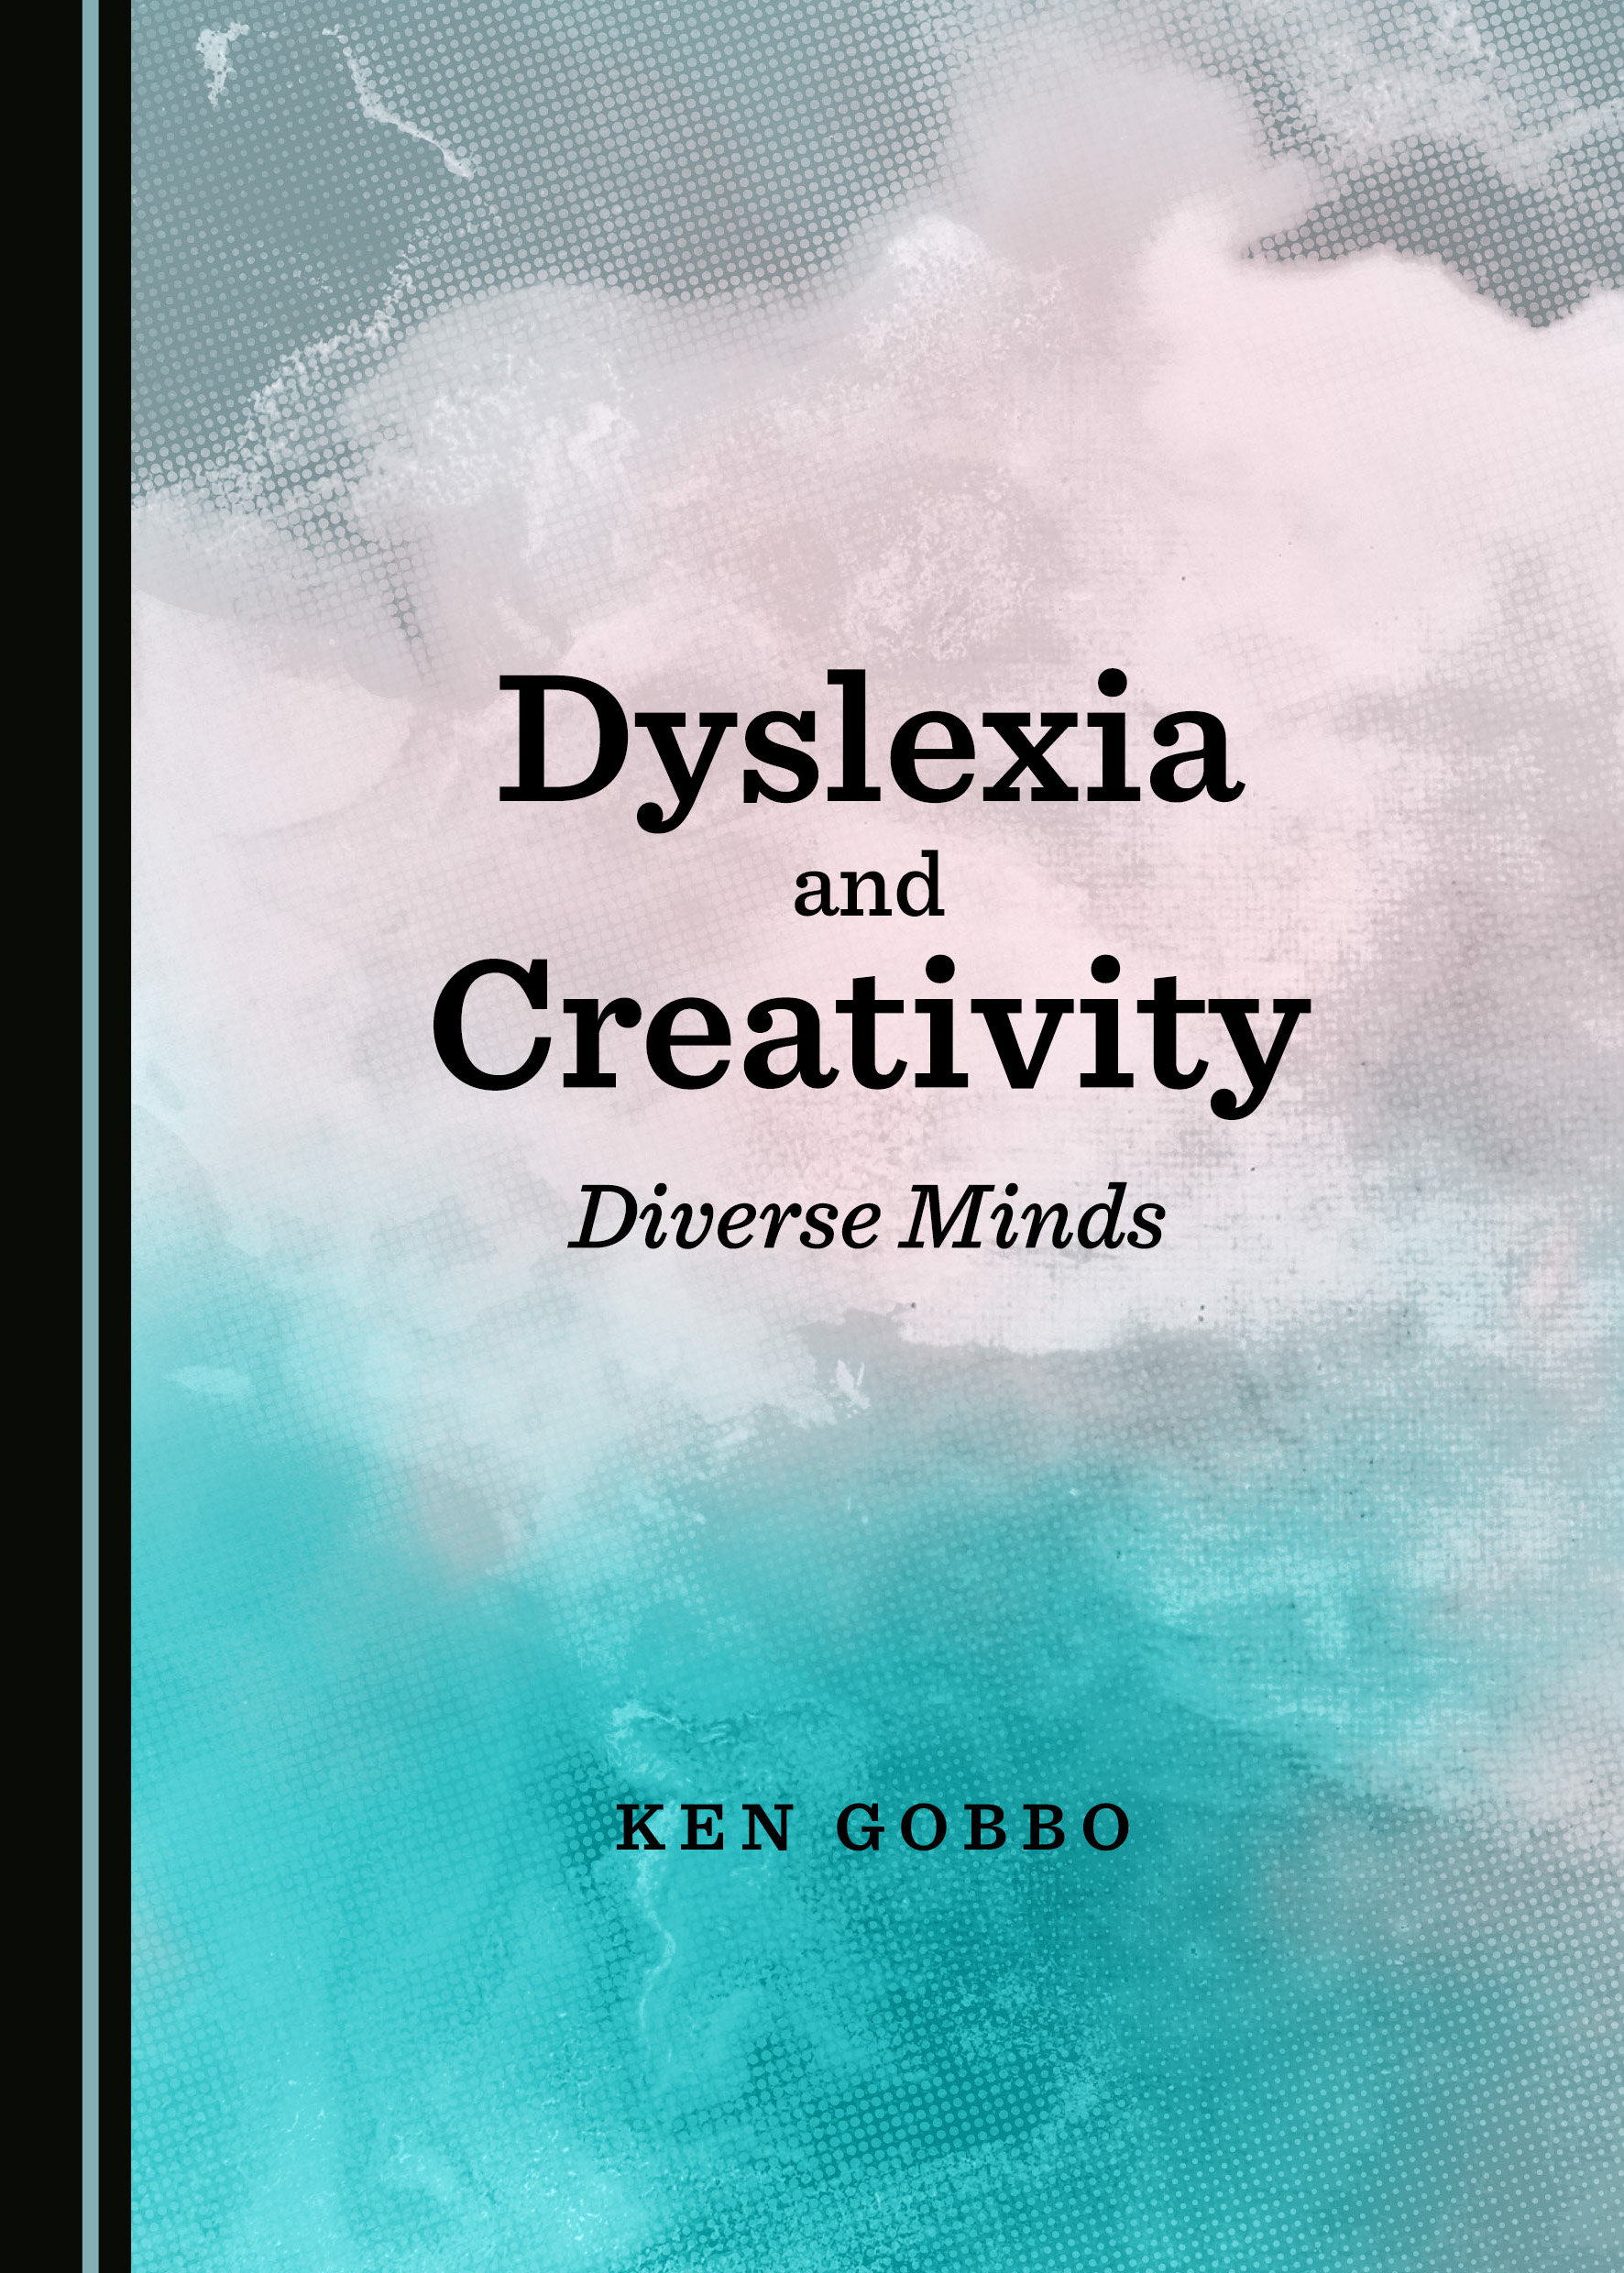 Dyslexia and Creativity: Diverse Minds